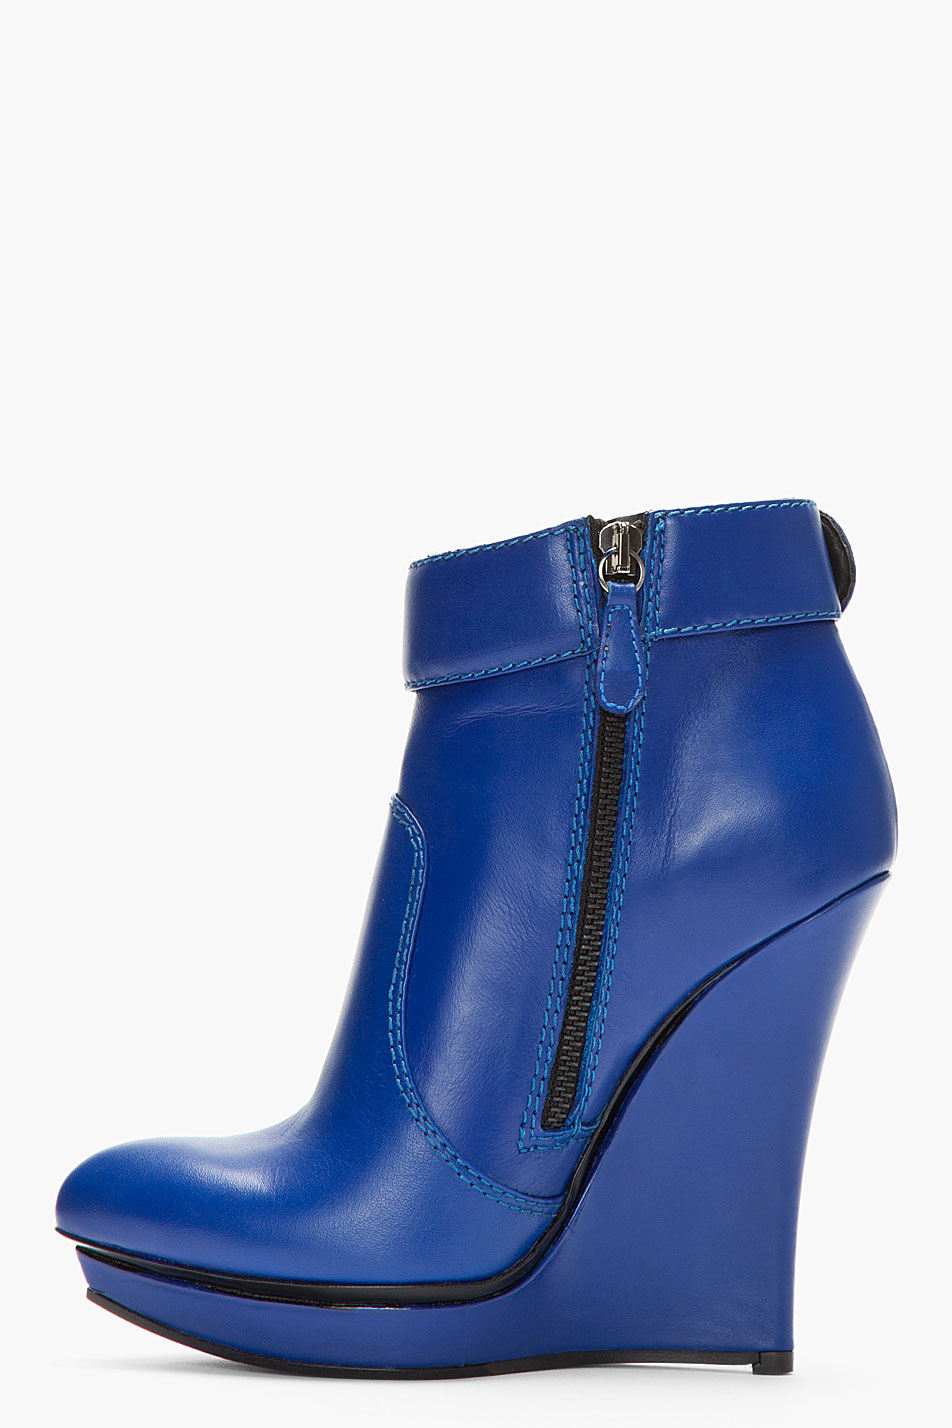 Mcq Blue Leather Slim Wedge Biker Boots in Blue